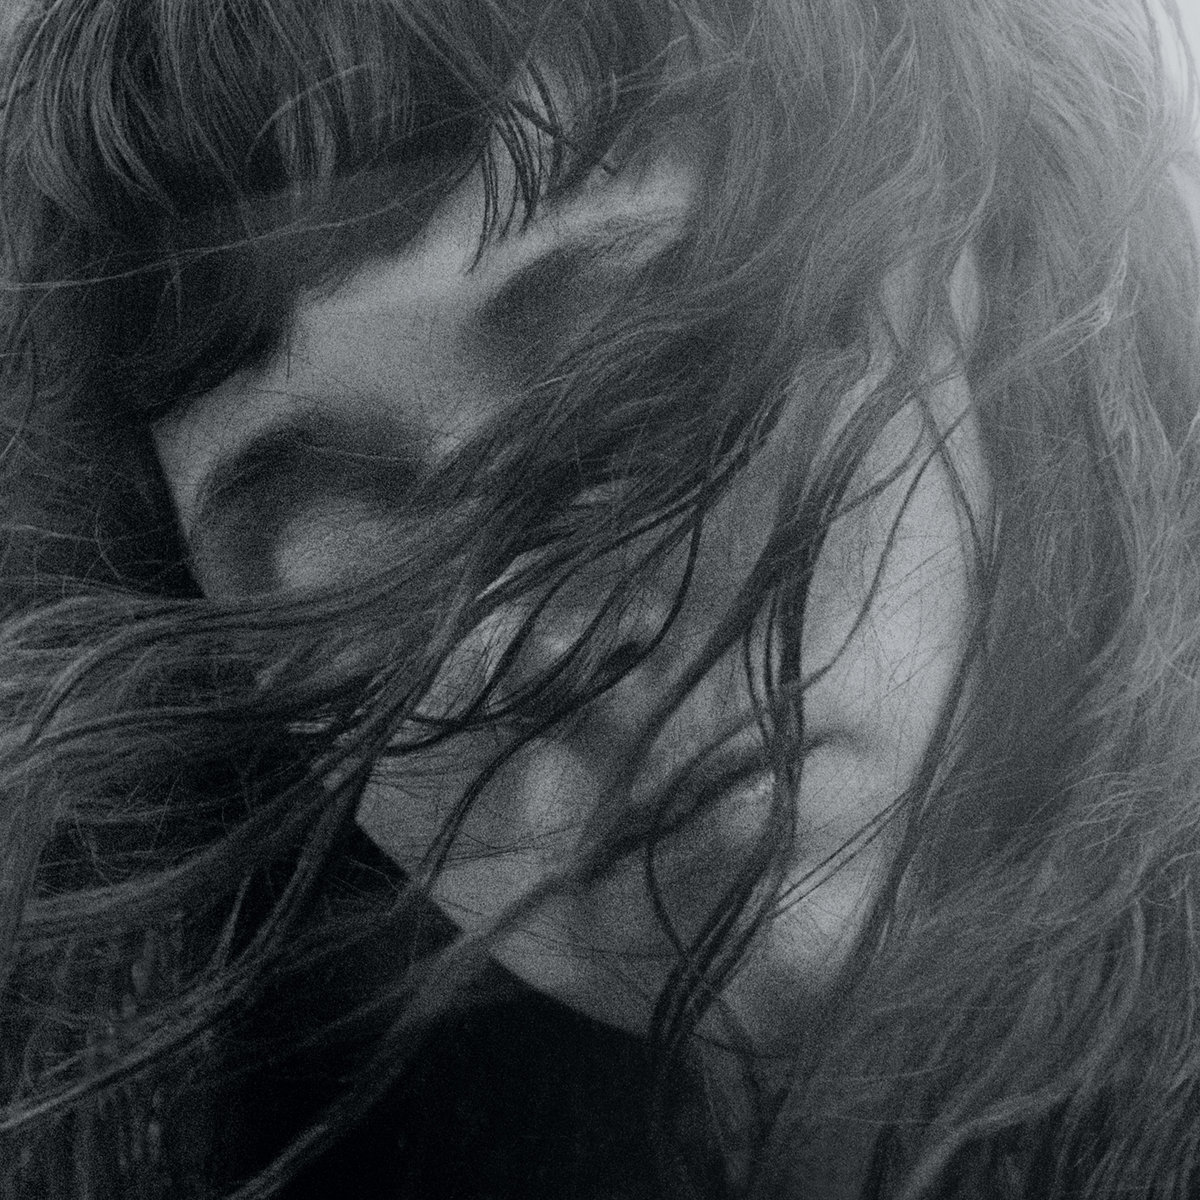 Waxahatchee Out in the Storm